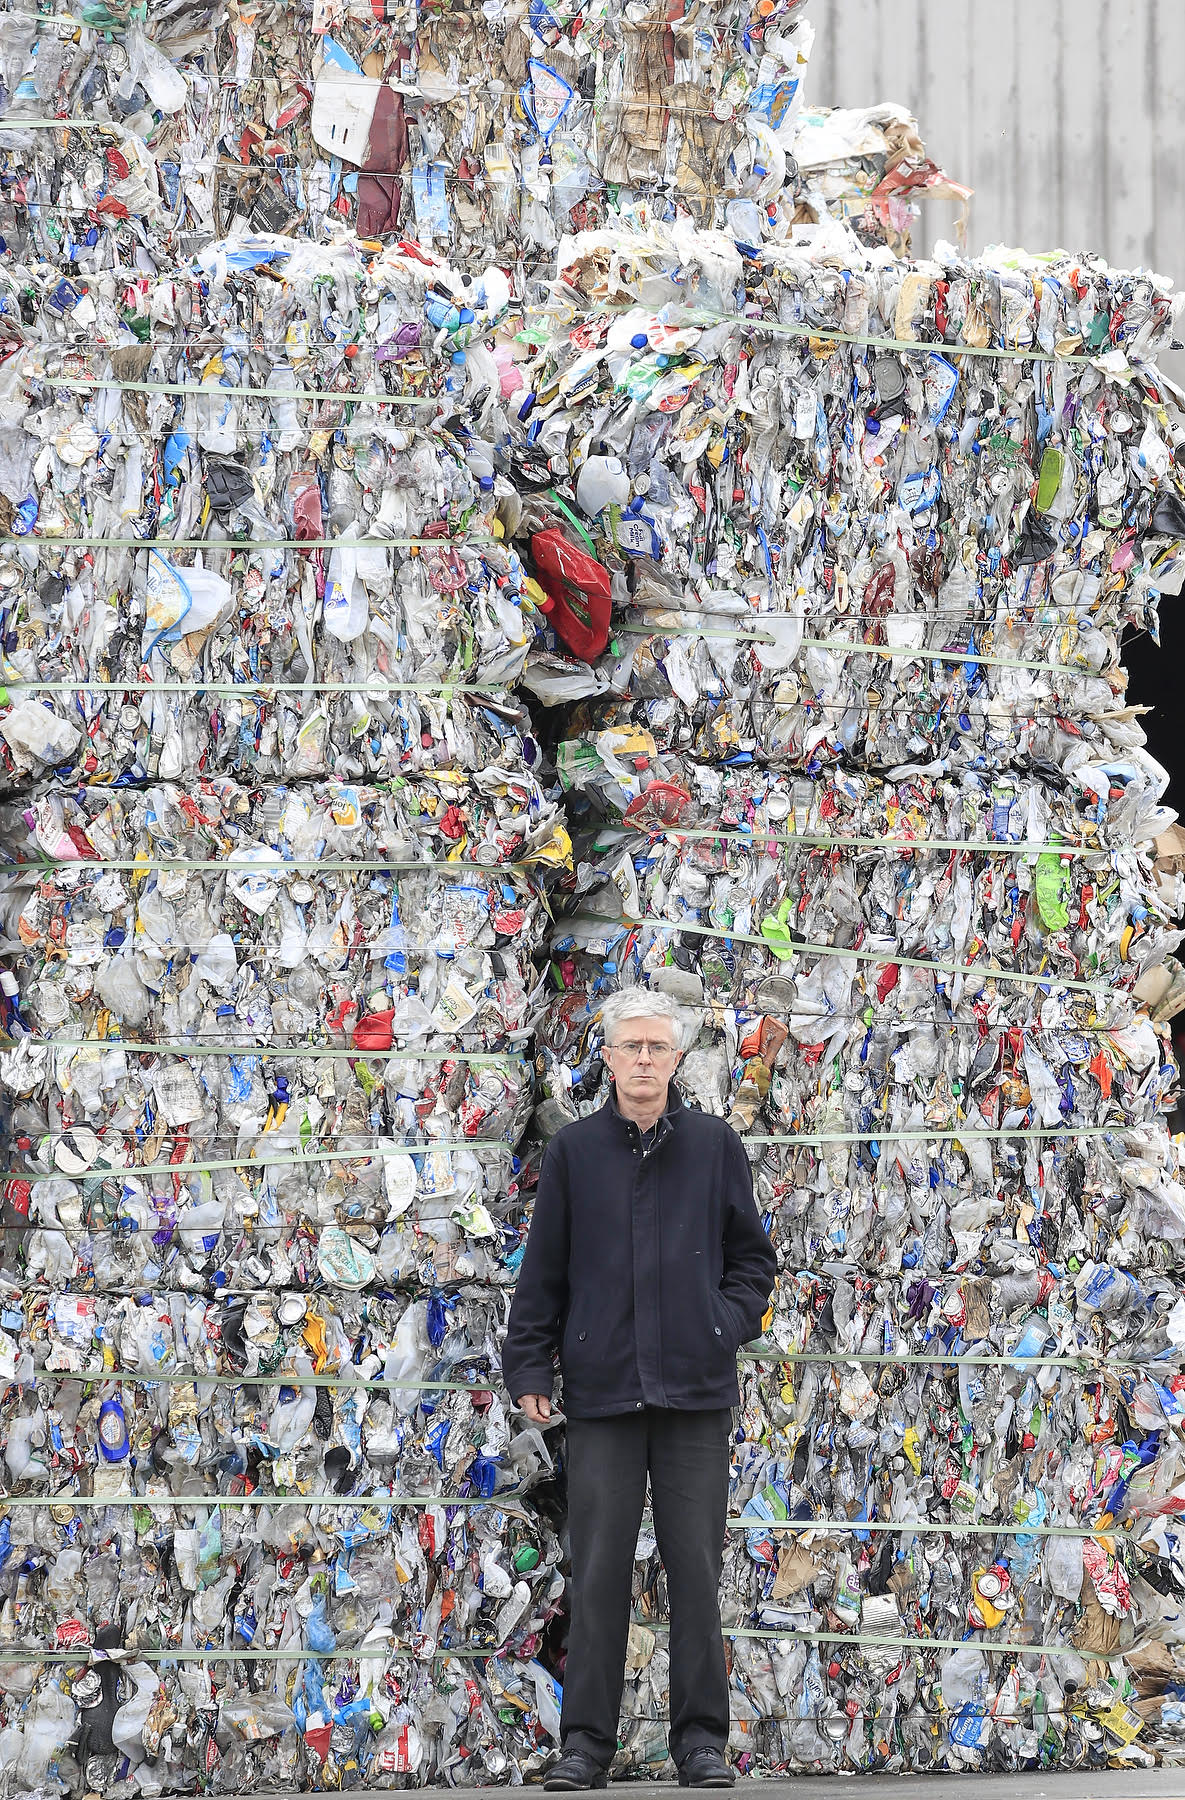 Part of the SKM Recycling's plastic stockpile at Derwent Park. Photo Rob Blakers.